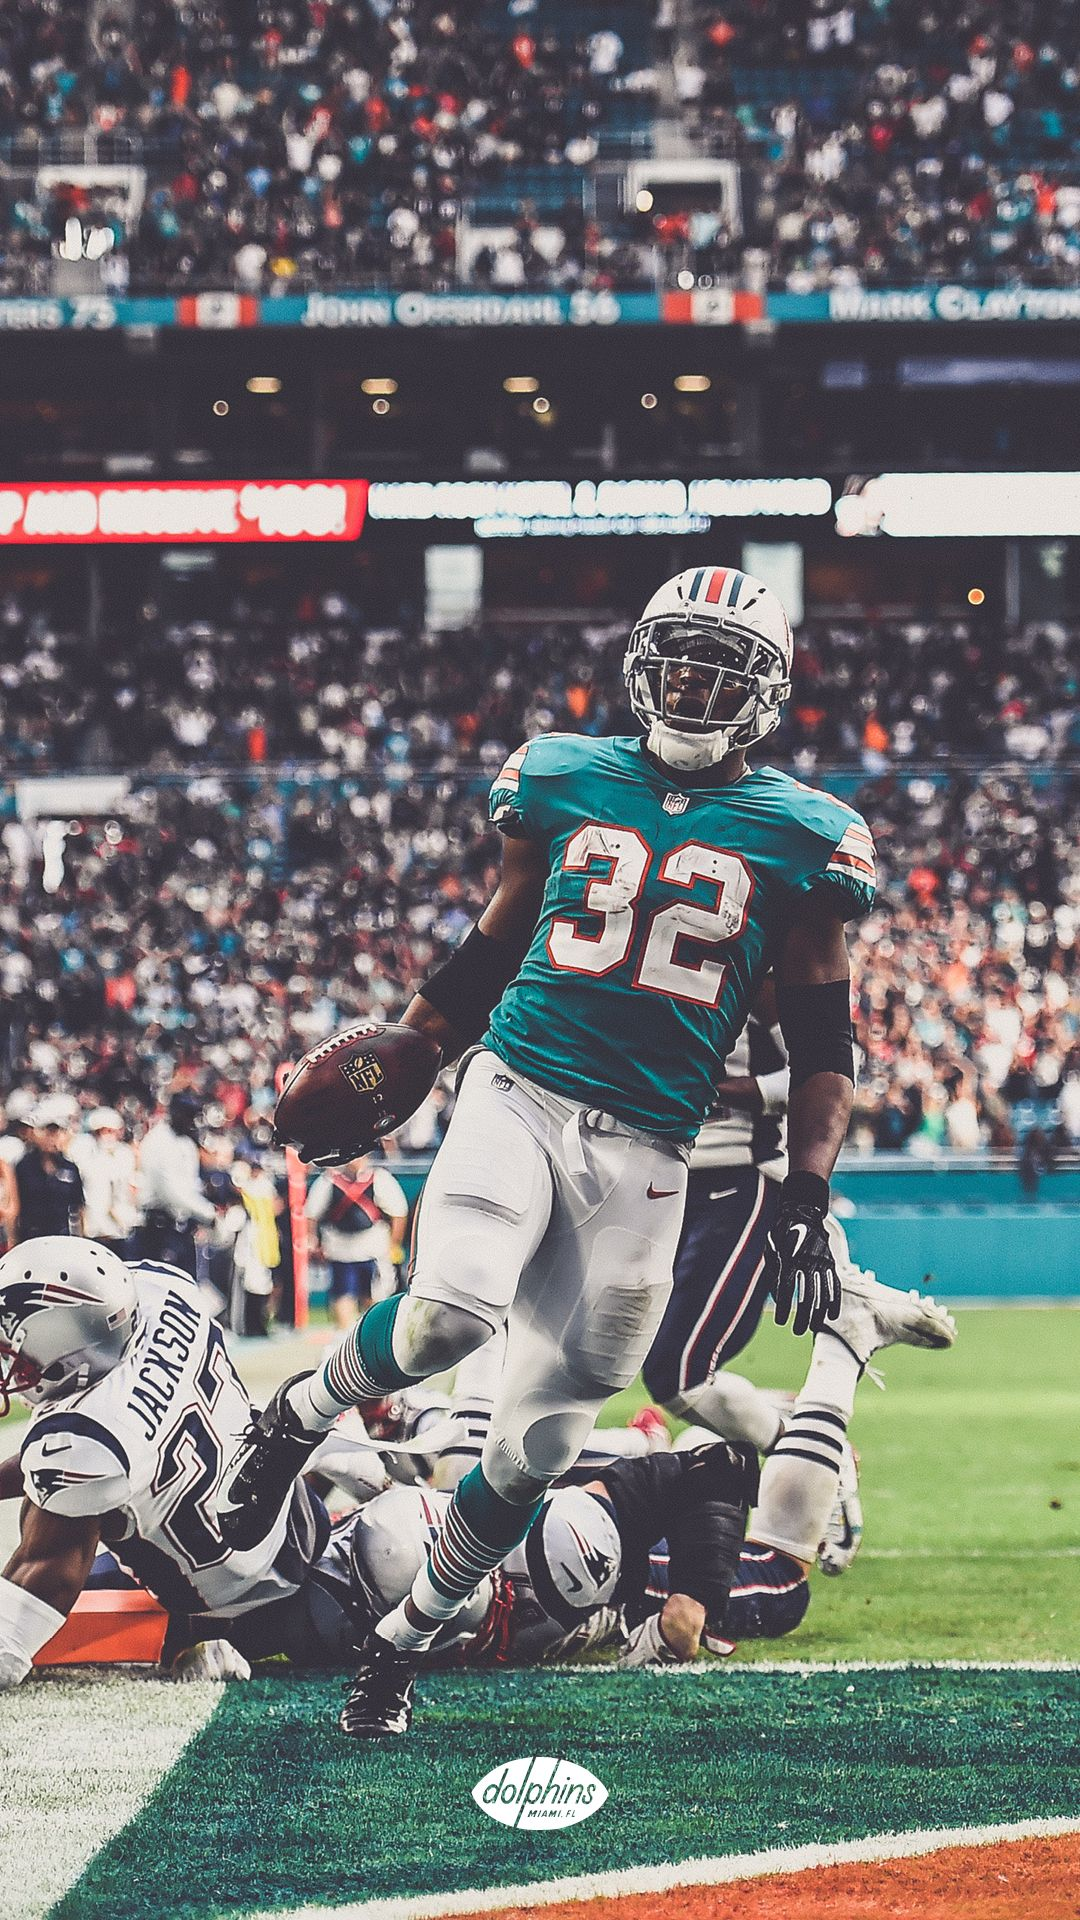 Https Res Cloudinary Com Nflclubs Image Private Dolphins Hbpm0ed5476npvfjynmd Miami Dolphins Dolphins Miami Dolphins Football